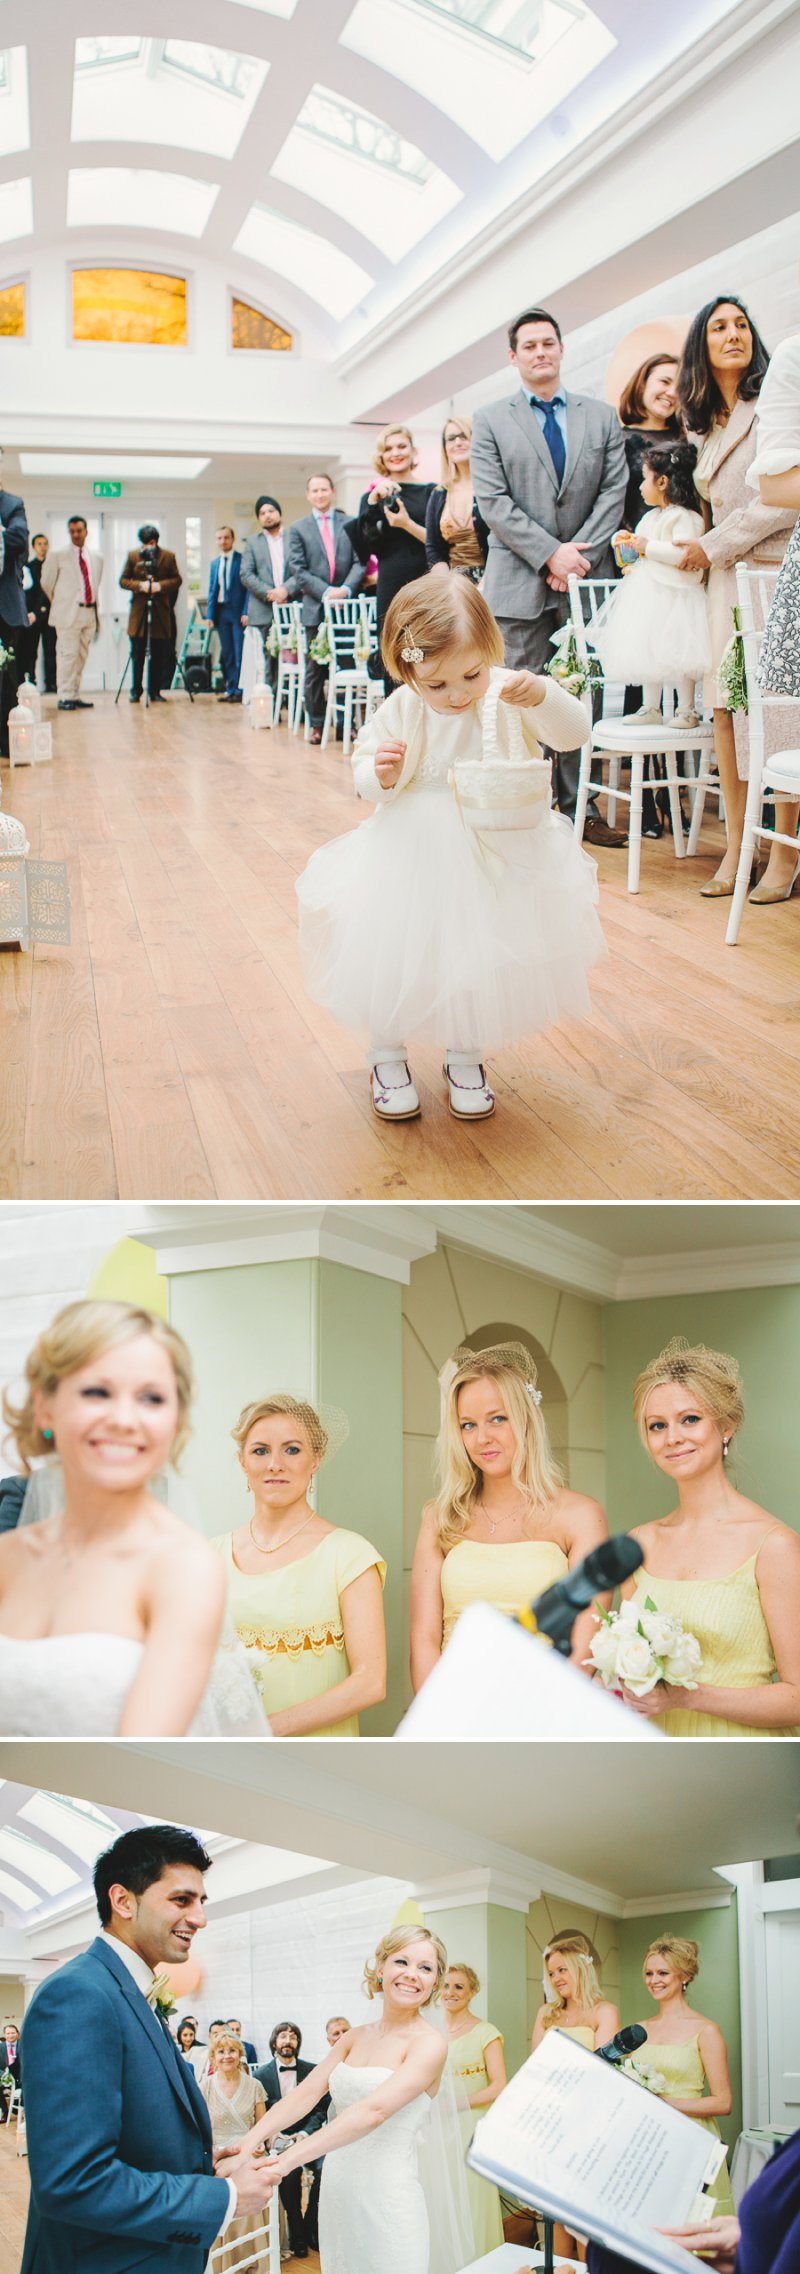 Yellow Themed Vintage Inspired Easter Wedding At Pembroke Lodge Richmond Park With Bride In Balira By Pronovias And Burberry Sandals With Groom In Blue Reiss Suit And Bridesmaids In Yellow Vintage Dresses With Images By Shell De Mar 5